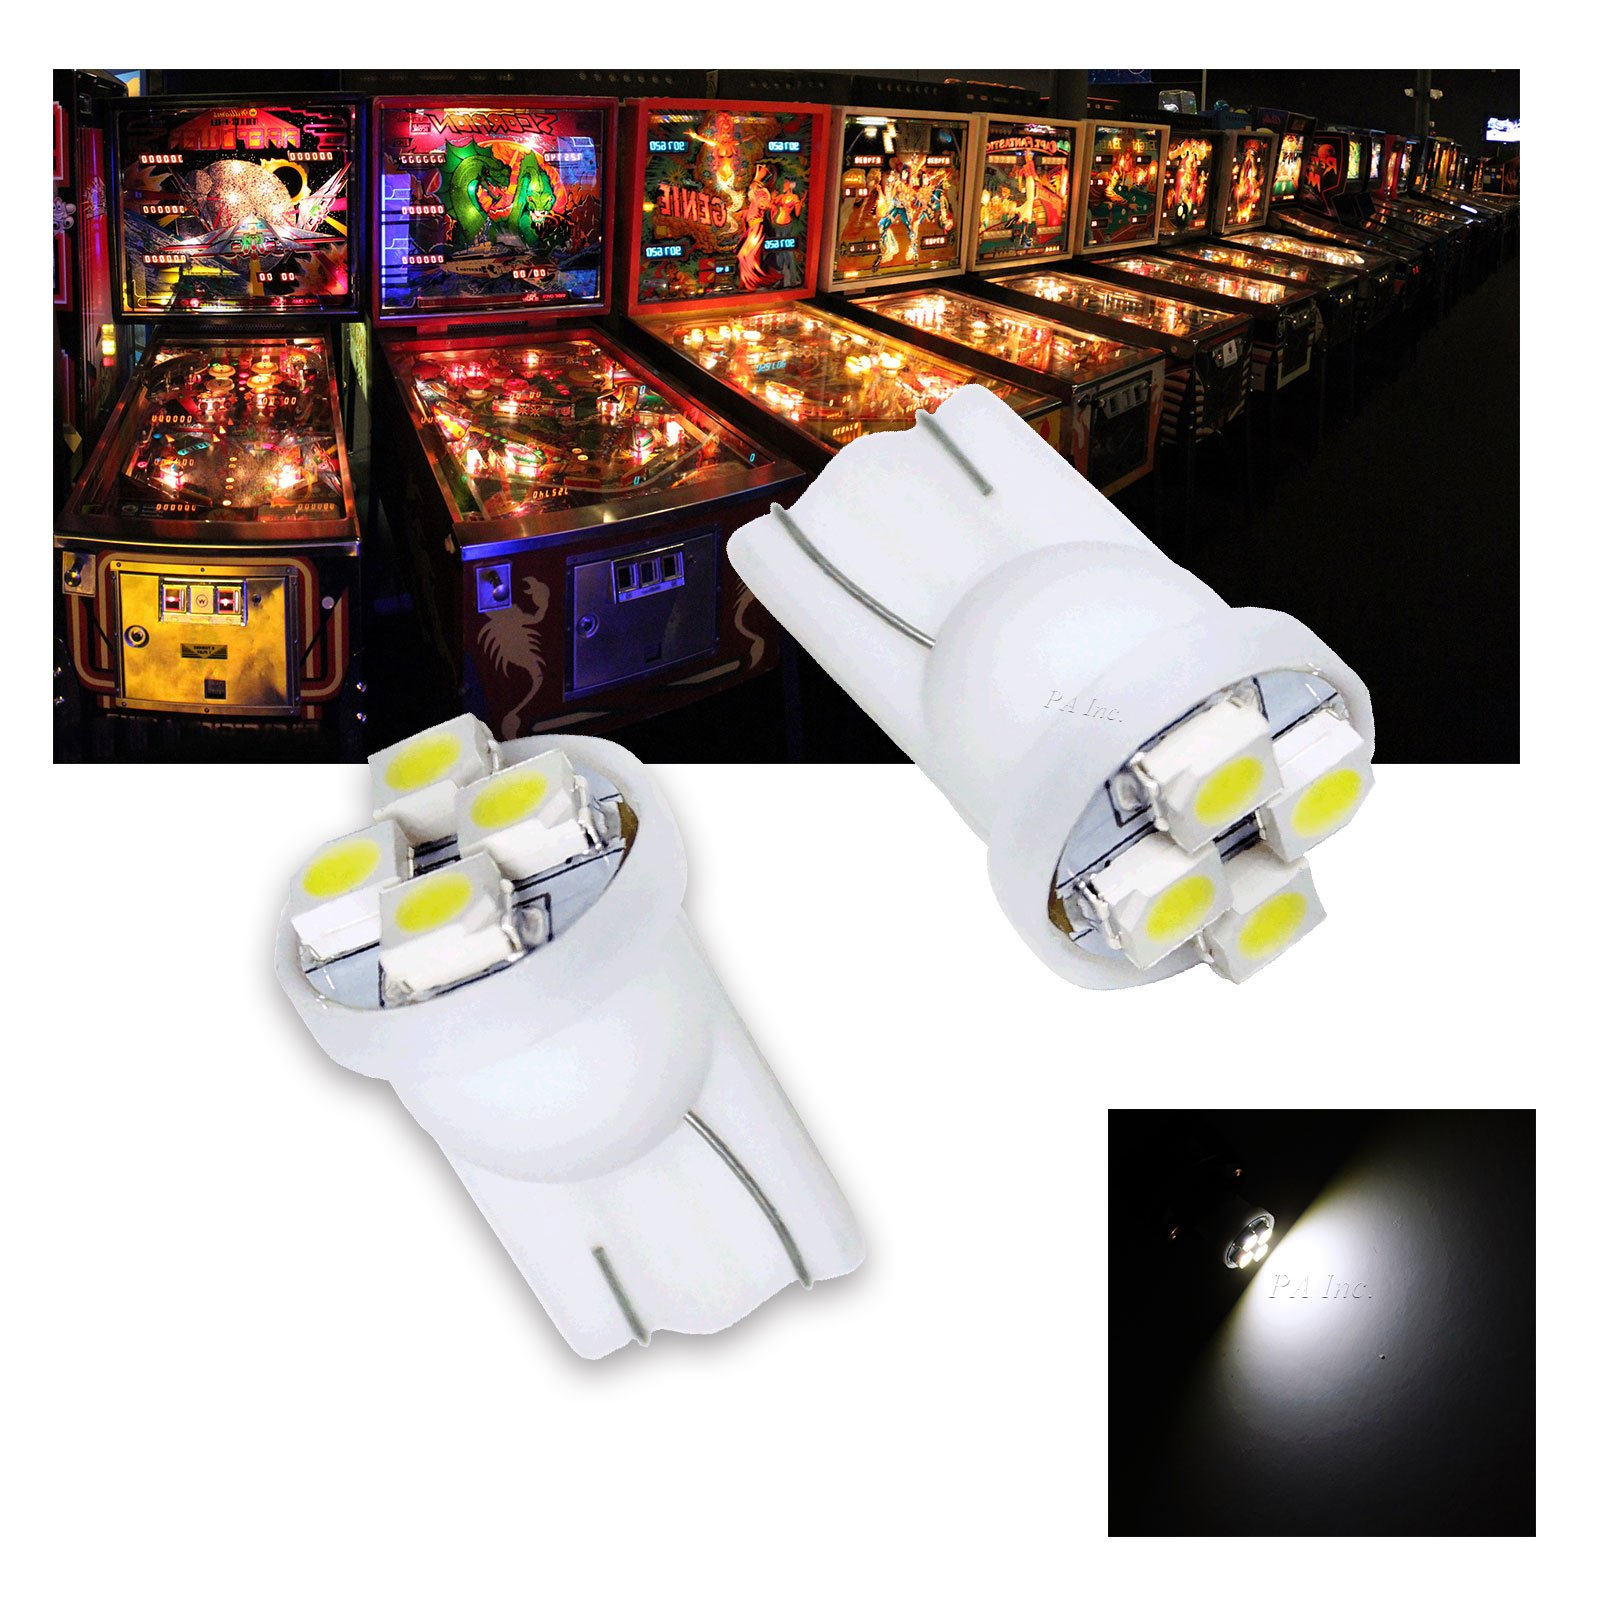 PA 10PCS #555 T10 4SMD LED Wedge Pinball Machine Light Bulb White-6.3V